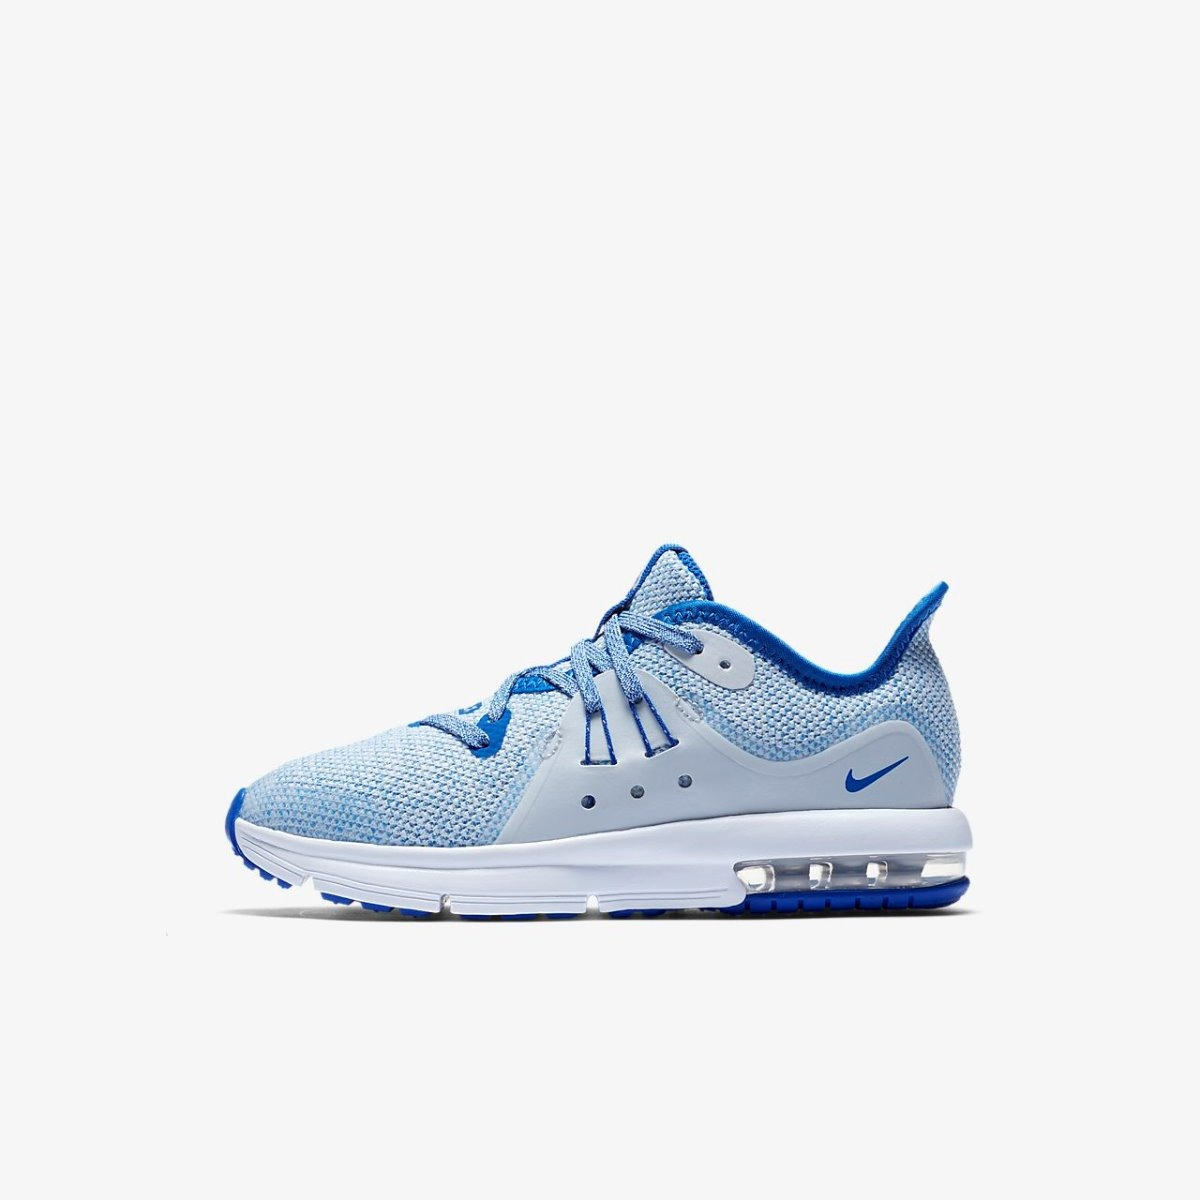 a96821ee76 Tenis W Nike Air Max Sequent 3 Azul Talla #4 Originales - $ 1,398.00 ...